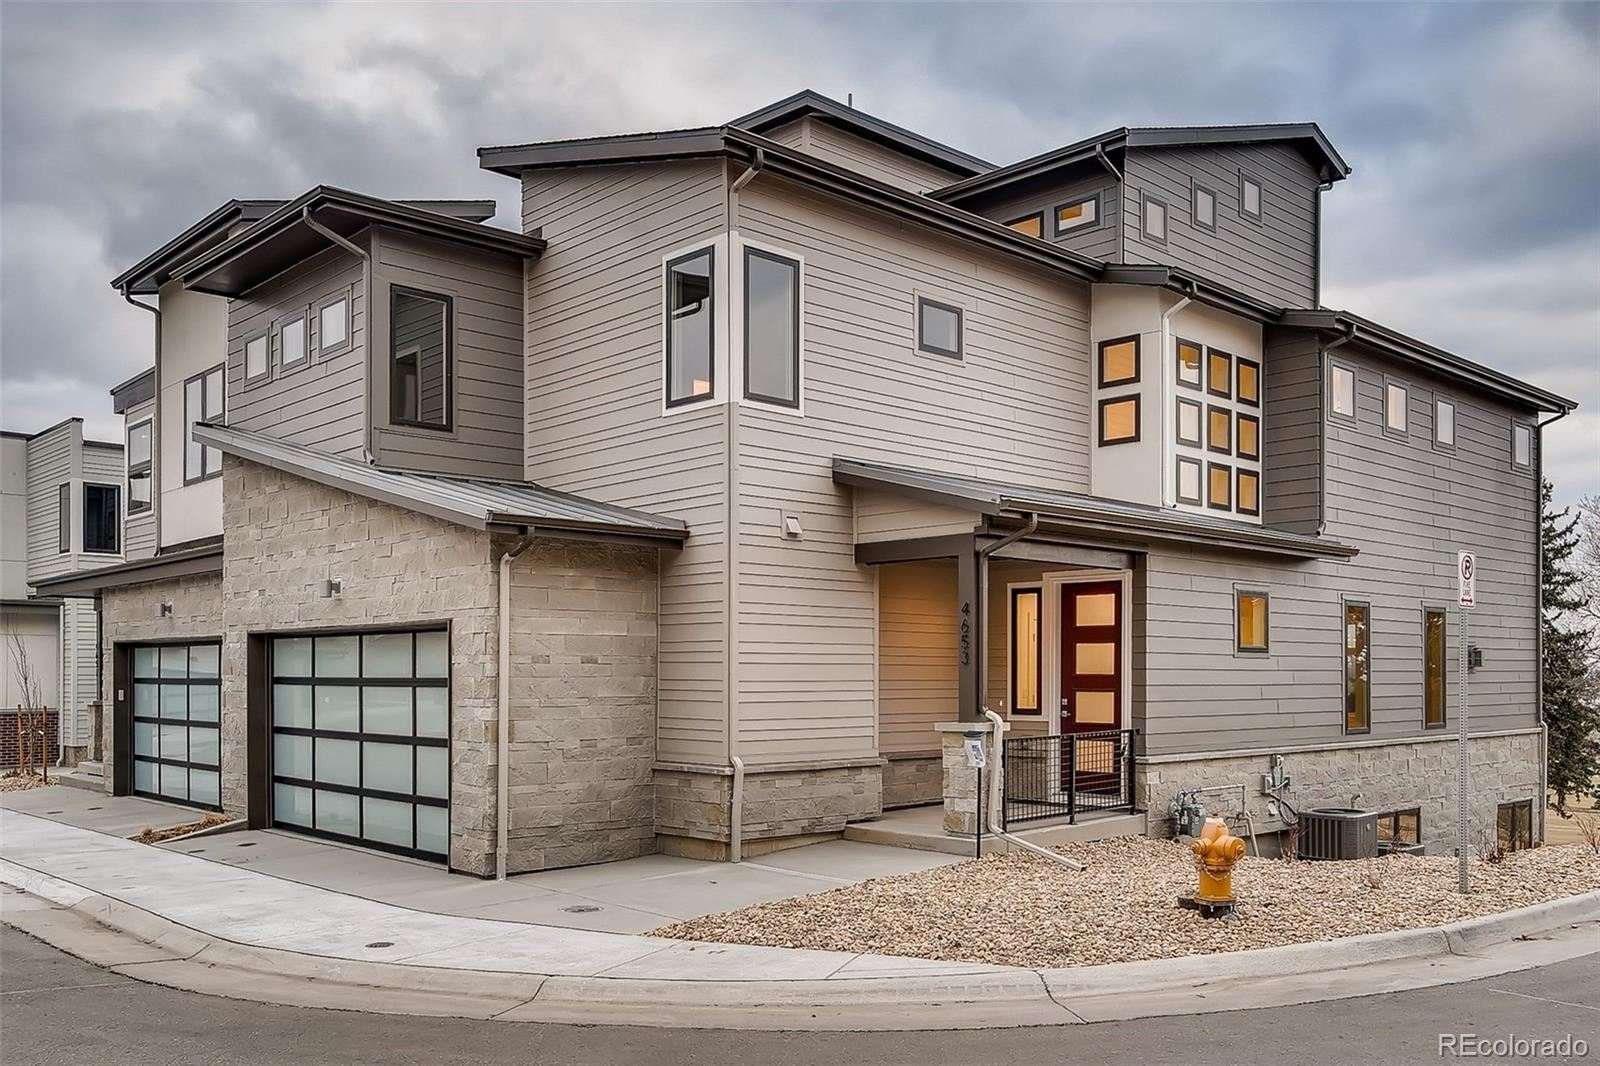 Photo of 4653 W 50th Place #10W, Denver, CO 80212 (MLS # 5342784)